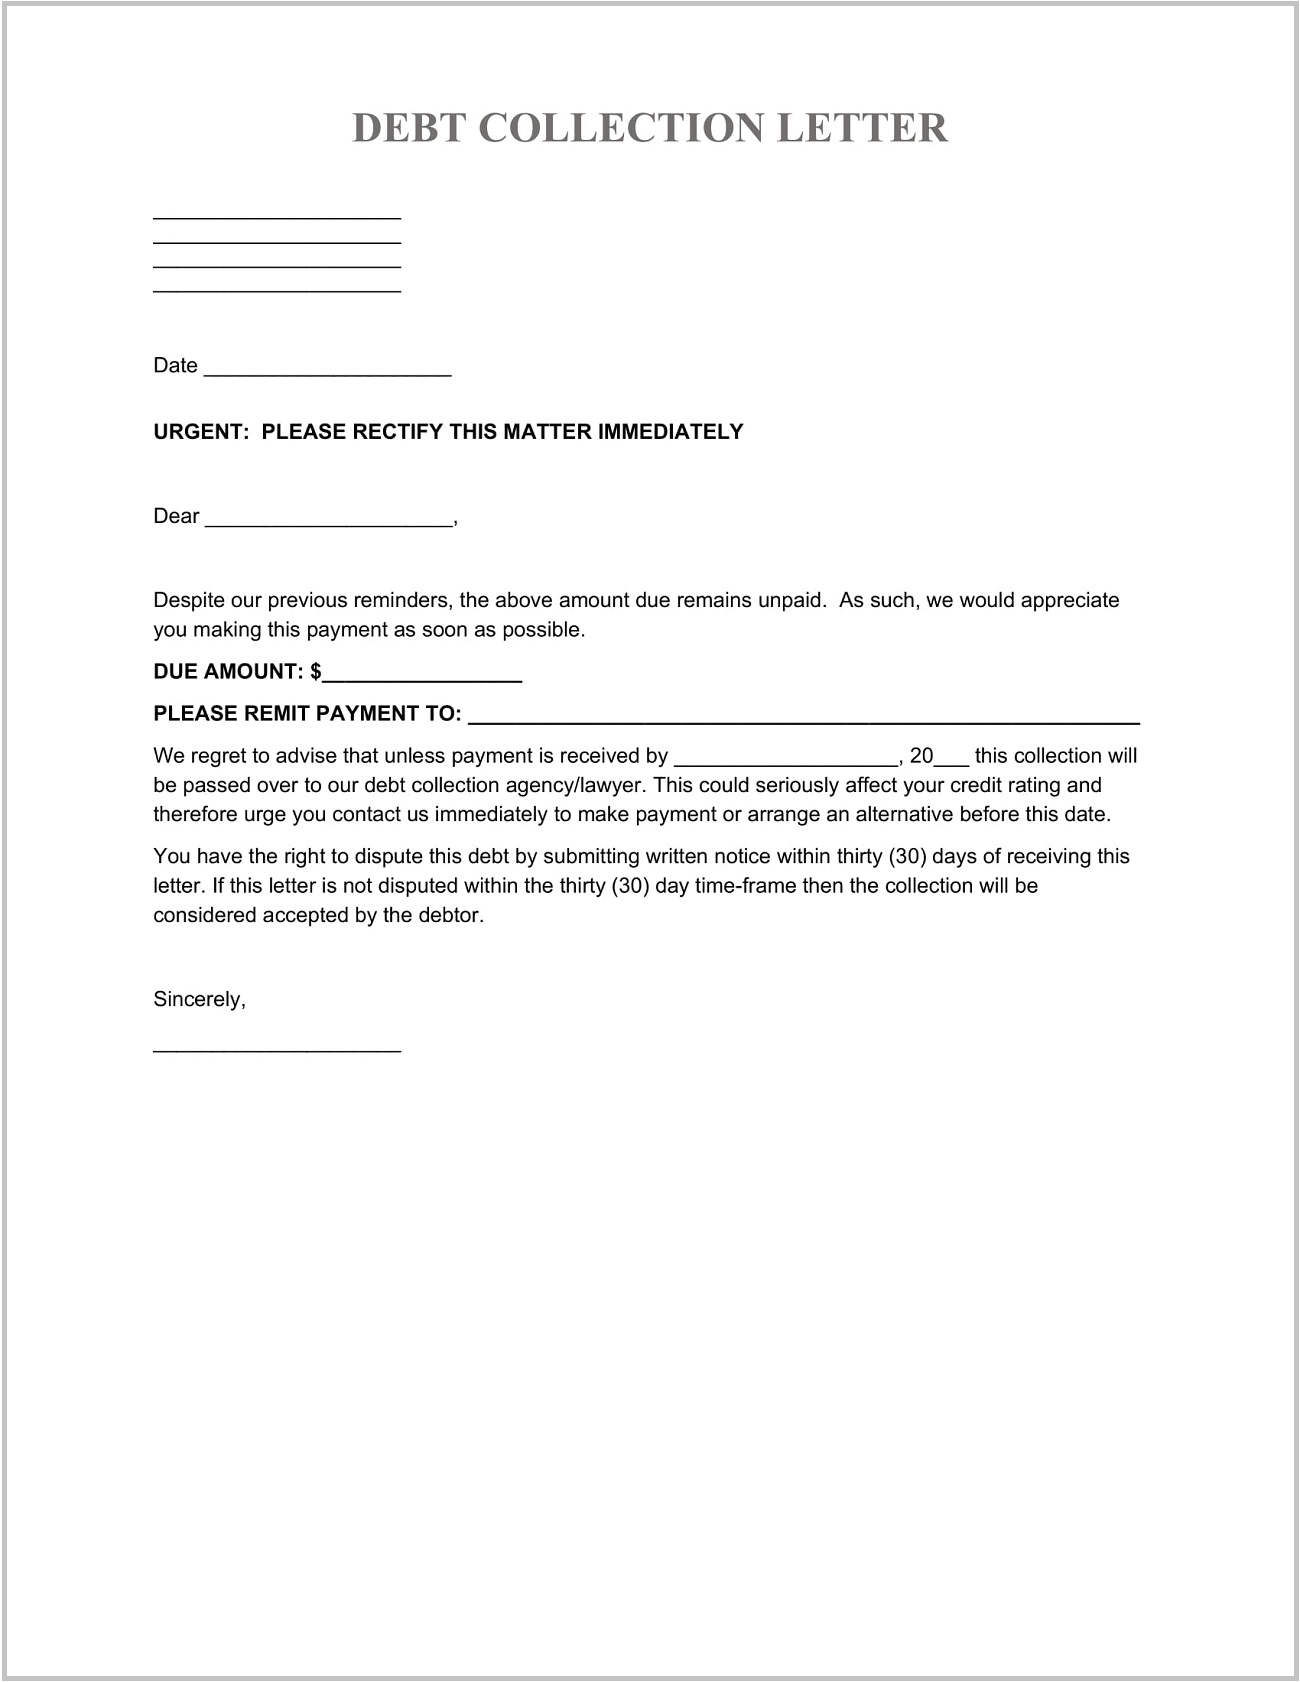 Debt Collection Letter Template Word